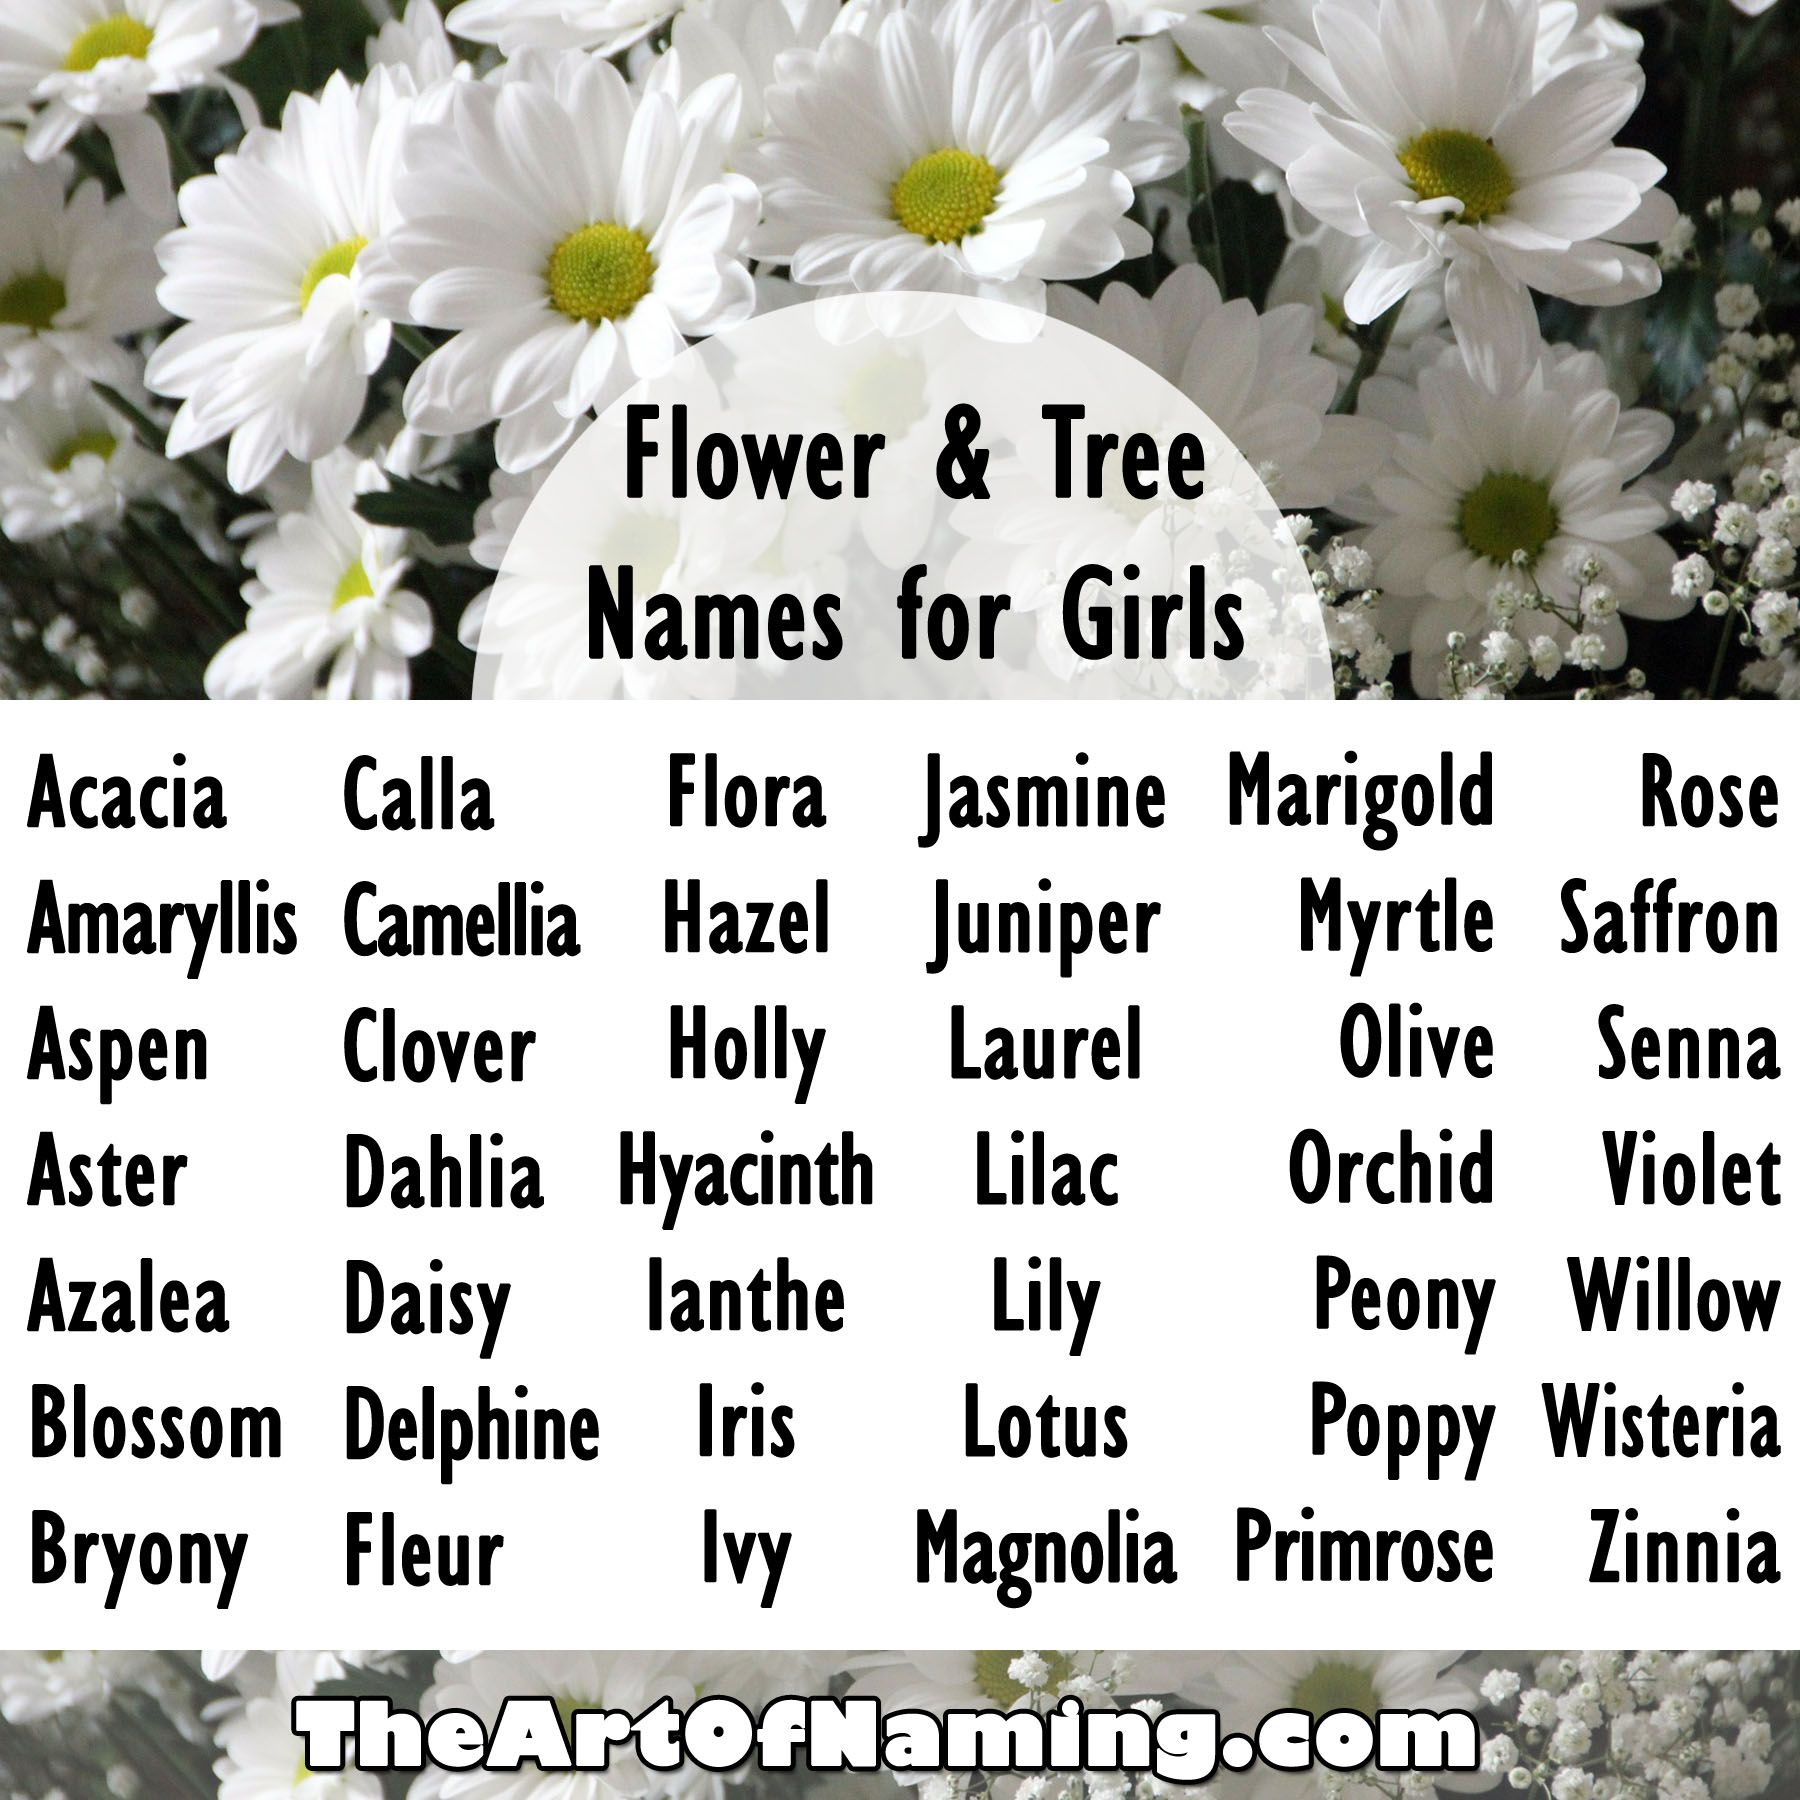 Flower Names For Girls What are your favorite flower or tree names for girls? #babynames Click to view